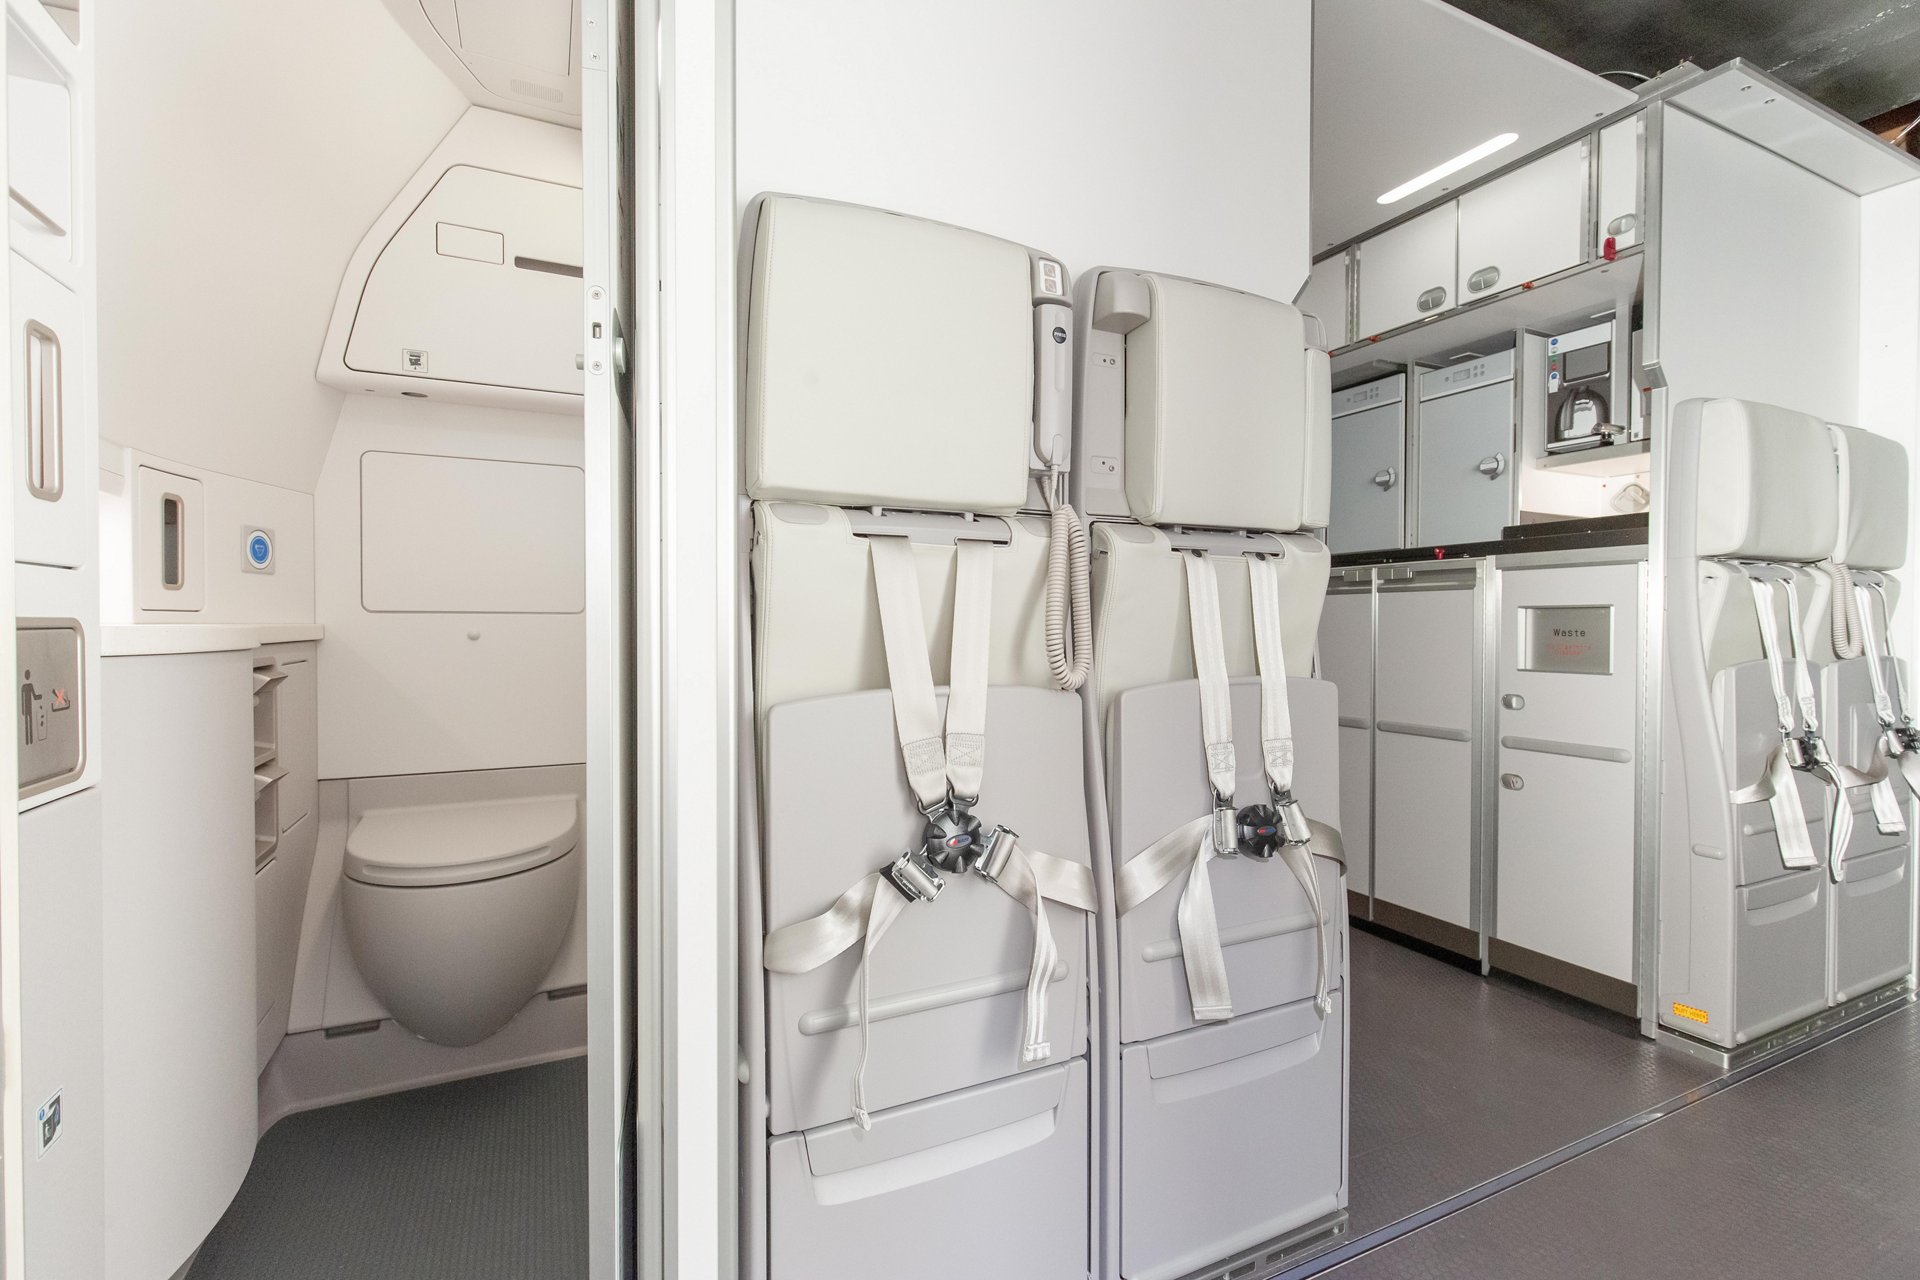 Efficient cabin configuration which enables to install additional lavatories including PRM capability to improve the seat count.